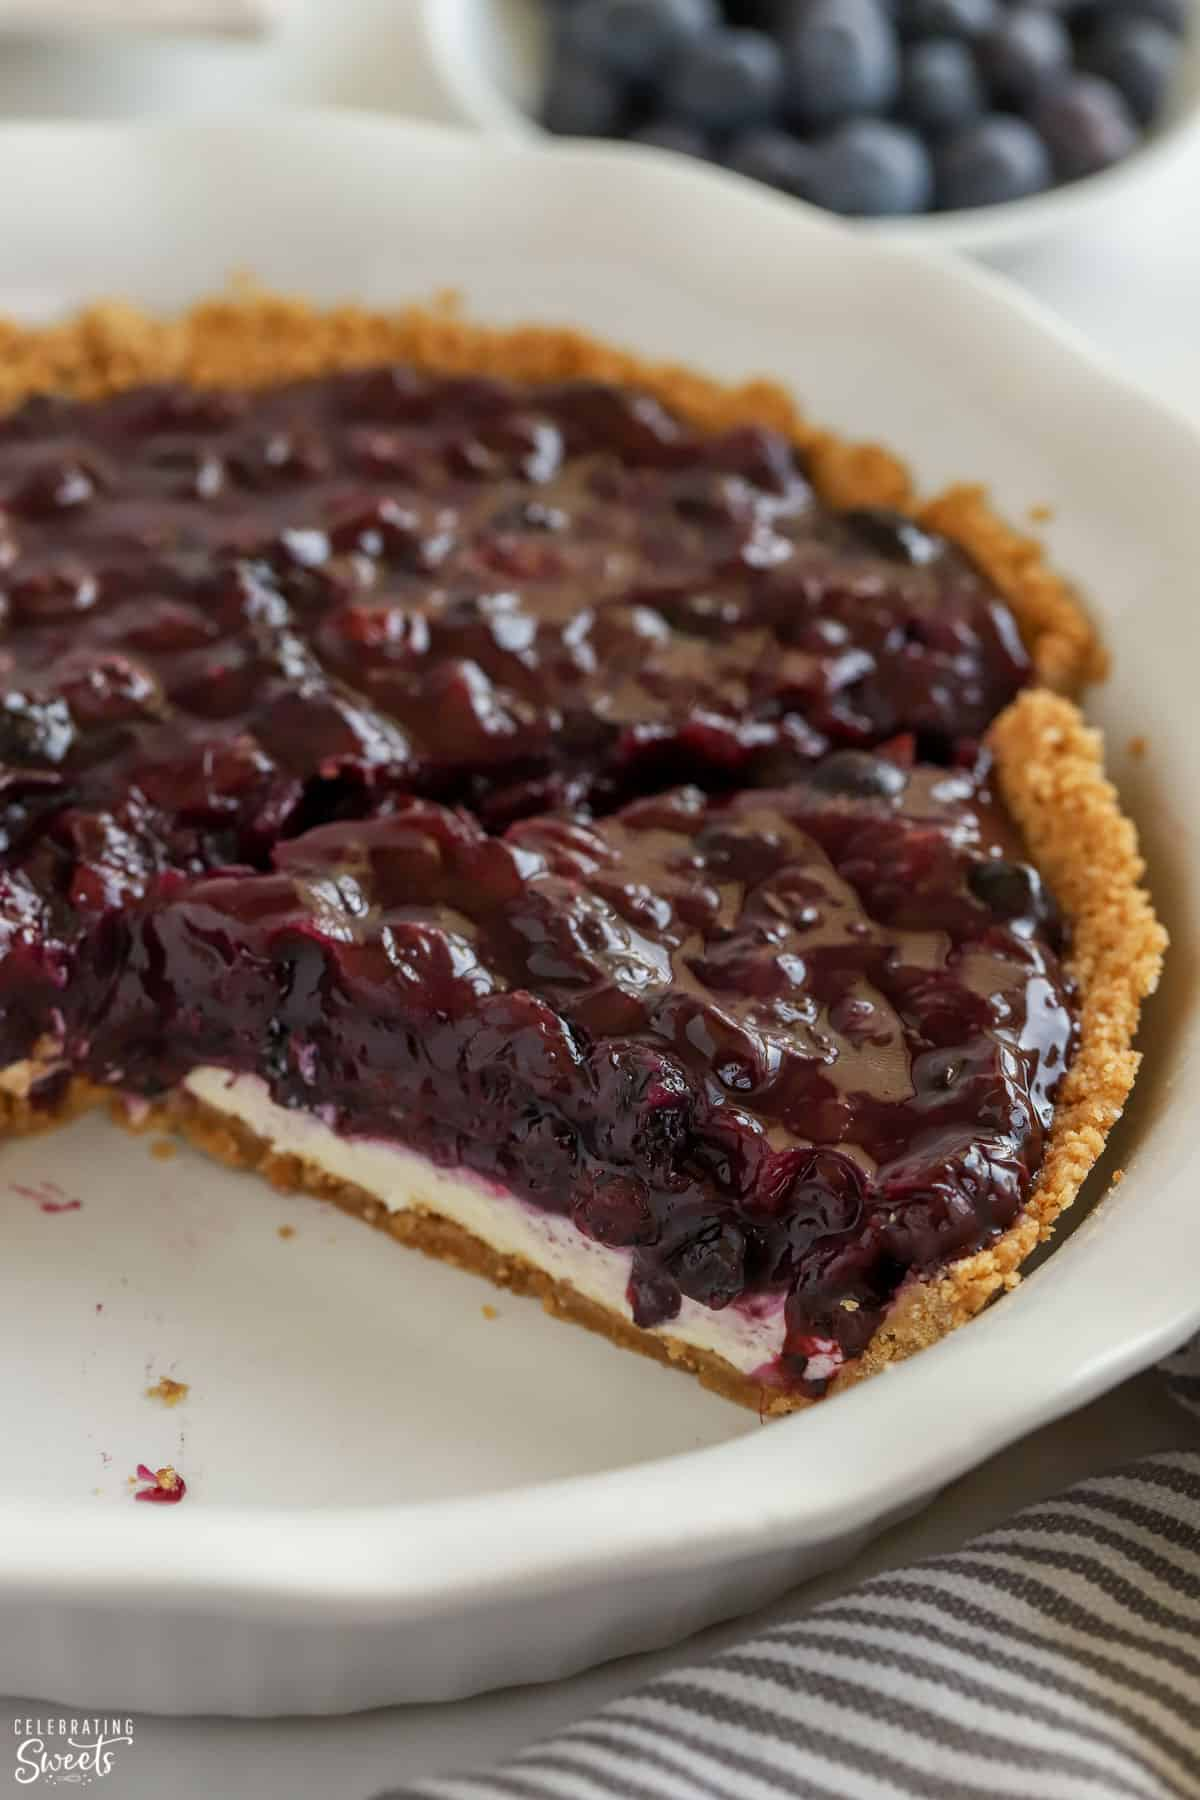 Blueberry Pie in a graham cracker crust with a white pie plate.